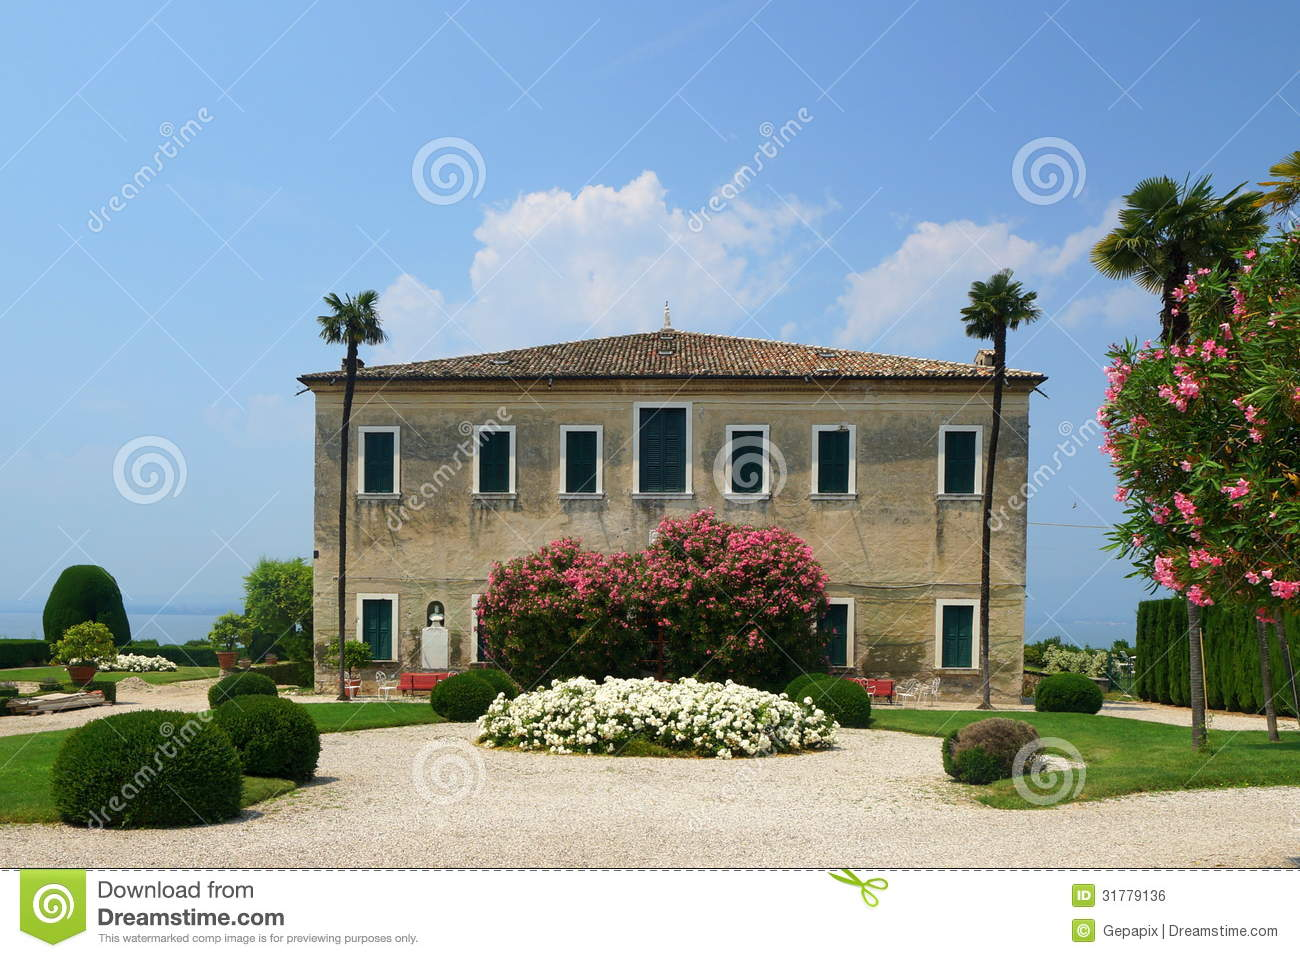 Brenzone Italy  city pictures gallery : italian mansion villa brenzone villa guarienti di brenzone th century ...